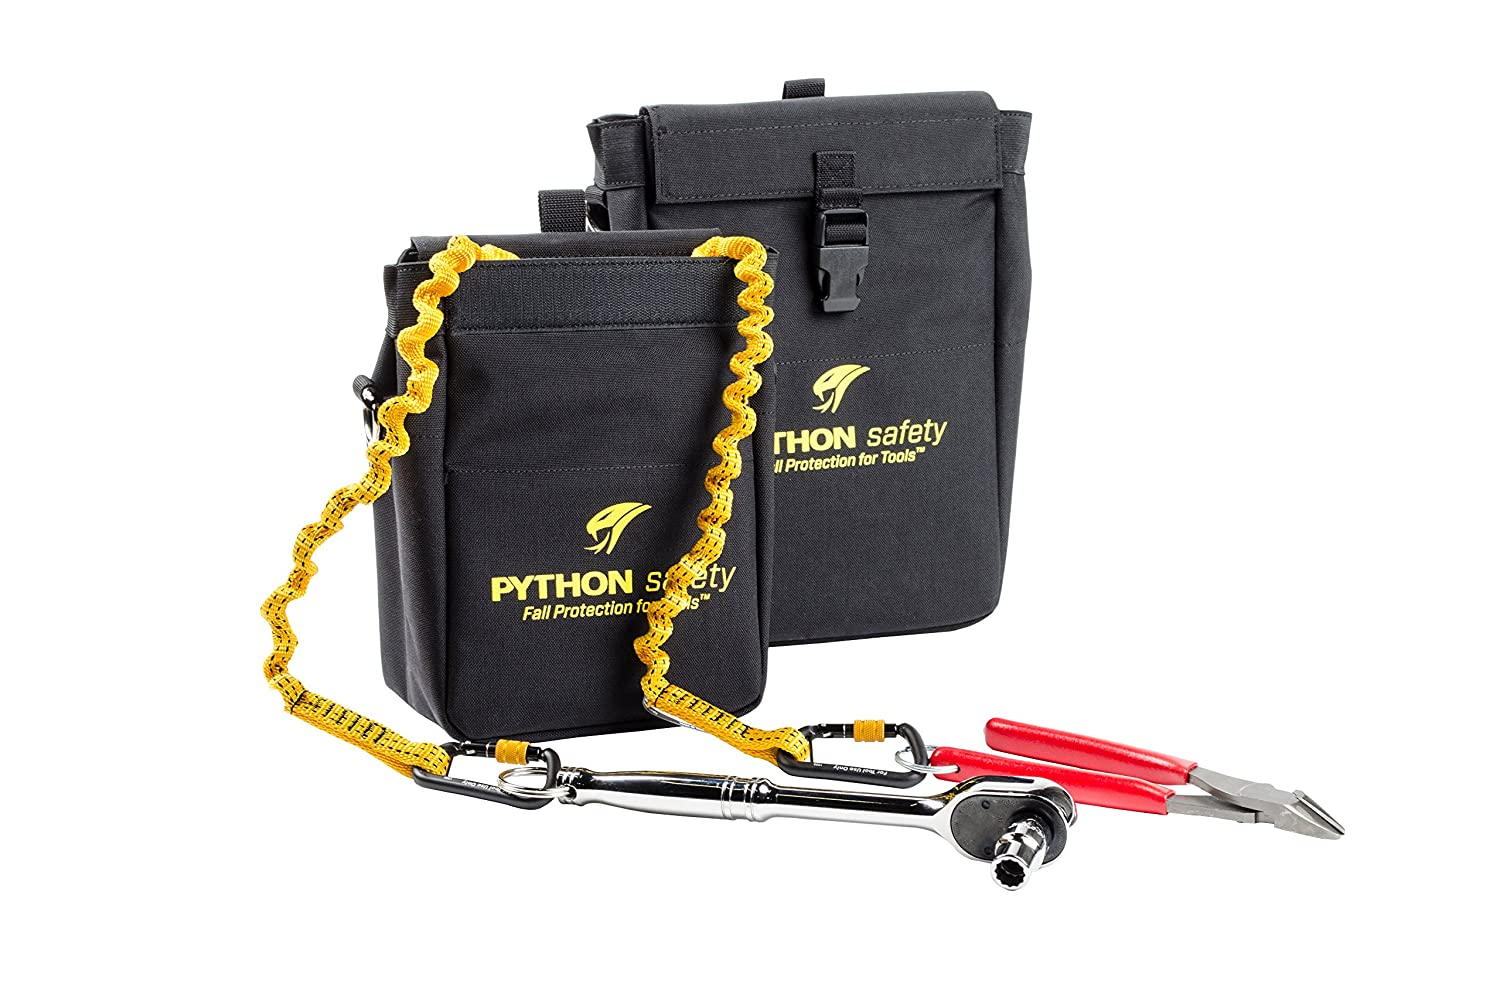 3M DBI-SALA Fall Protection For Tools w//Inner Lining Prevents Punctures and 2 Triggers JH Williams Tool Group PCH-TOOLXDTRIG Made w//Heavy Duty Durable Canvas 1500129 Extra Deep